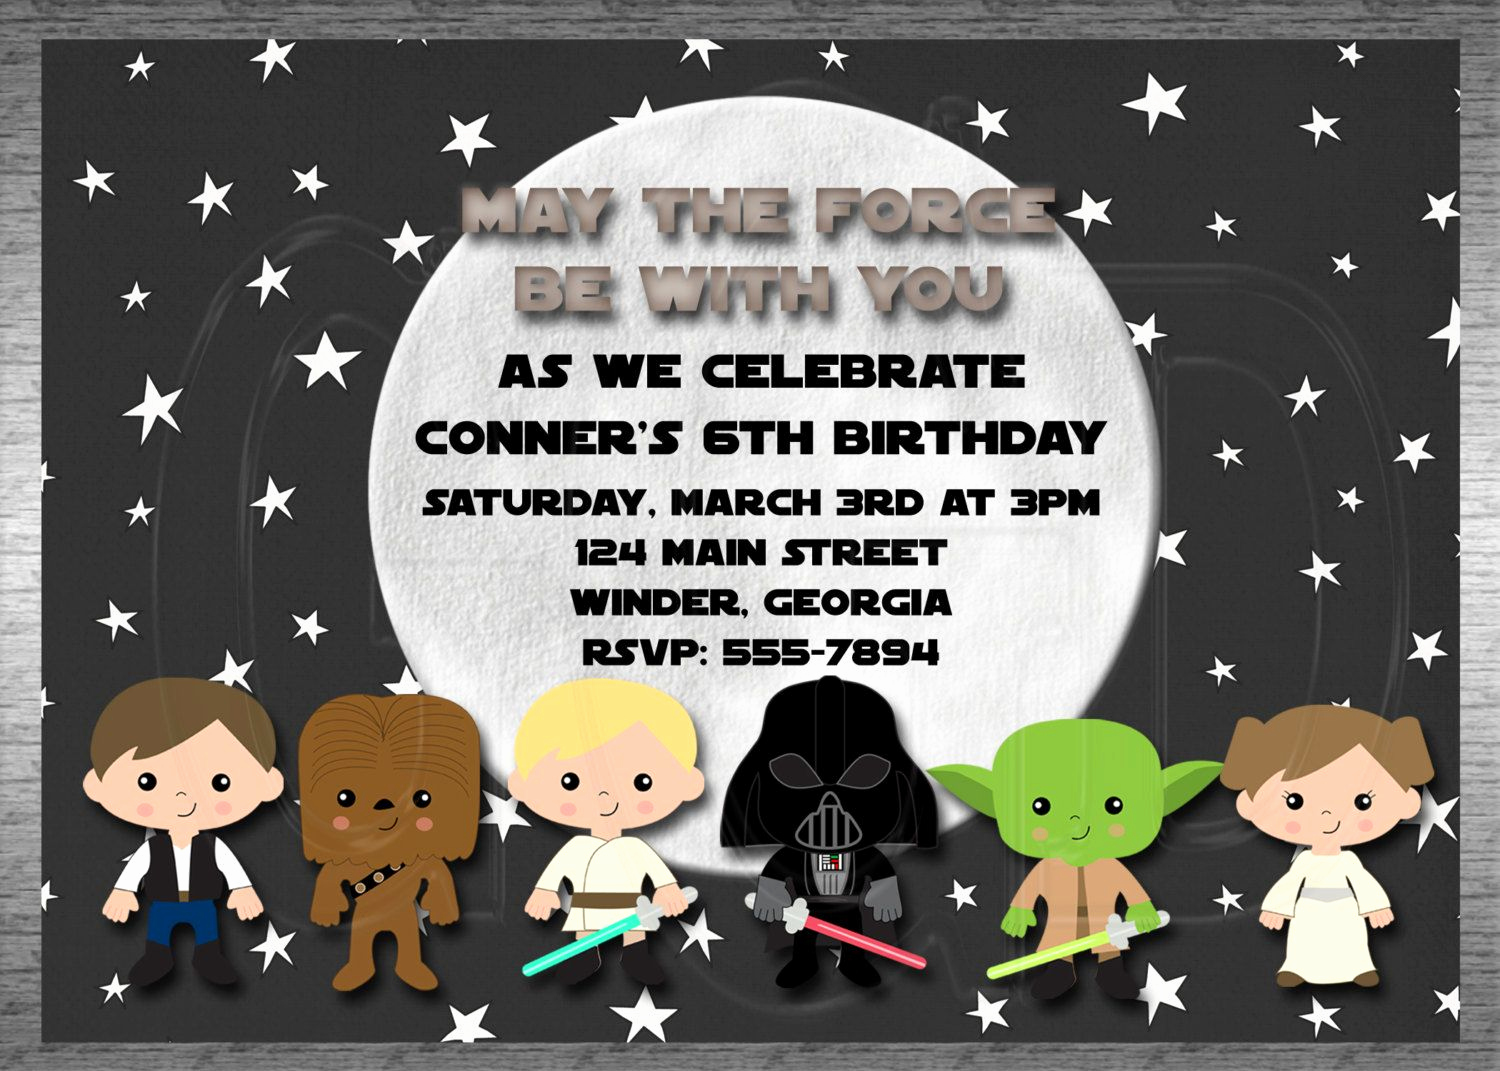 Free Star Wars Invitation Template Awesome Galaxy Star Wars Invitation Star Wars Birthday Party